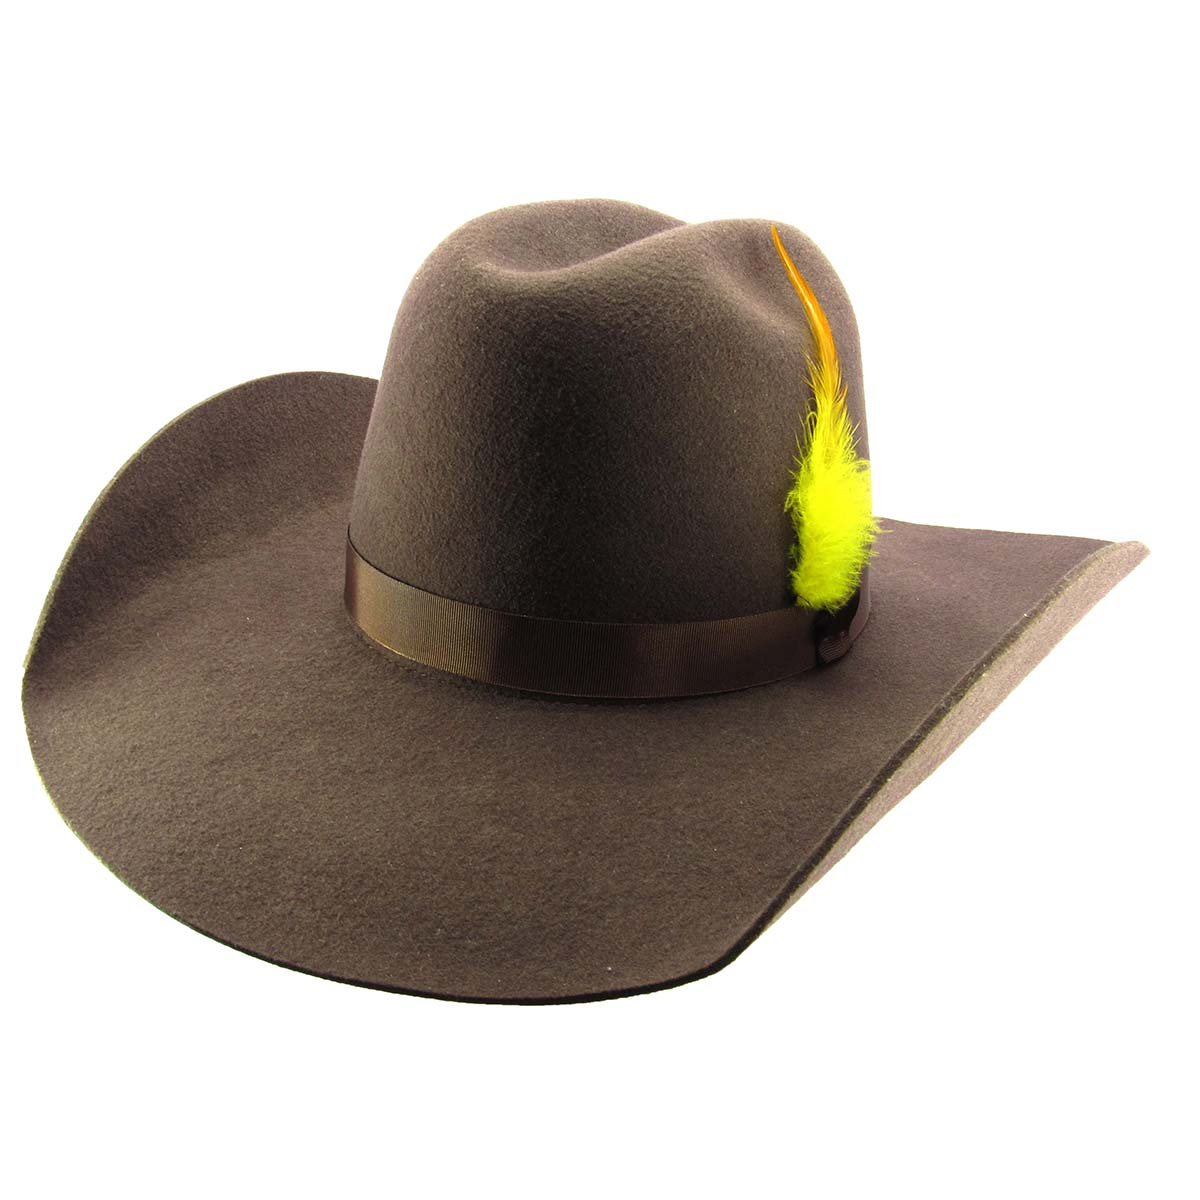 Chapéu Pralana Old West Marron Country Aba 11 - Cowboy BR 0a73782aefb